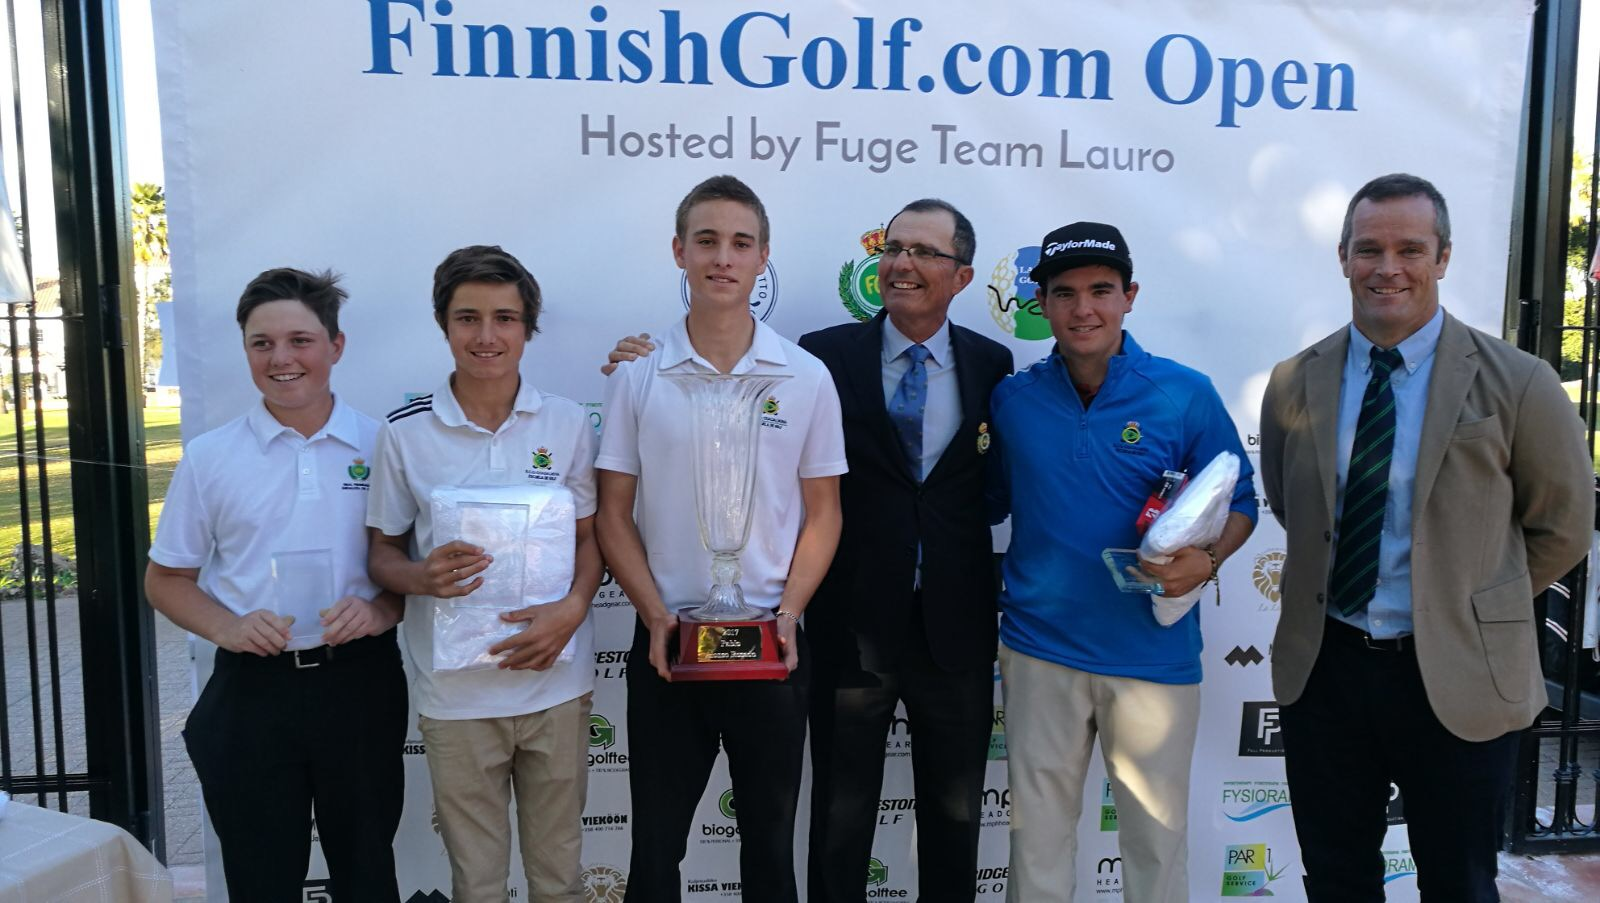 Guadalmina domina el Finnish Open Sub 21 en Lauro Golf